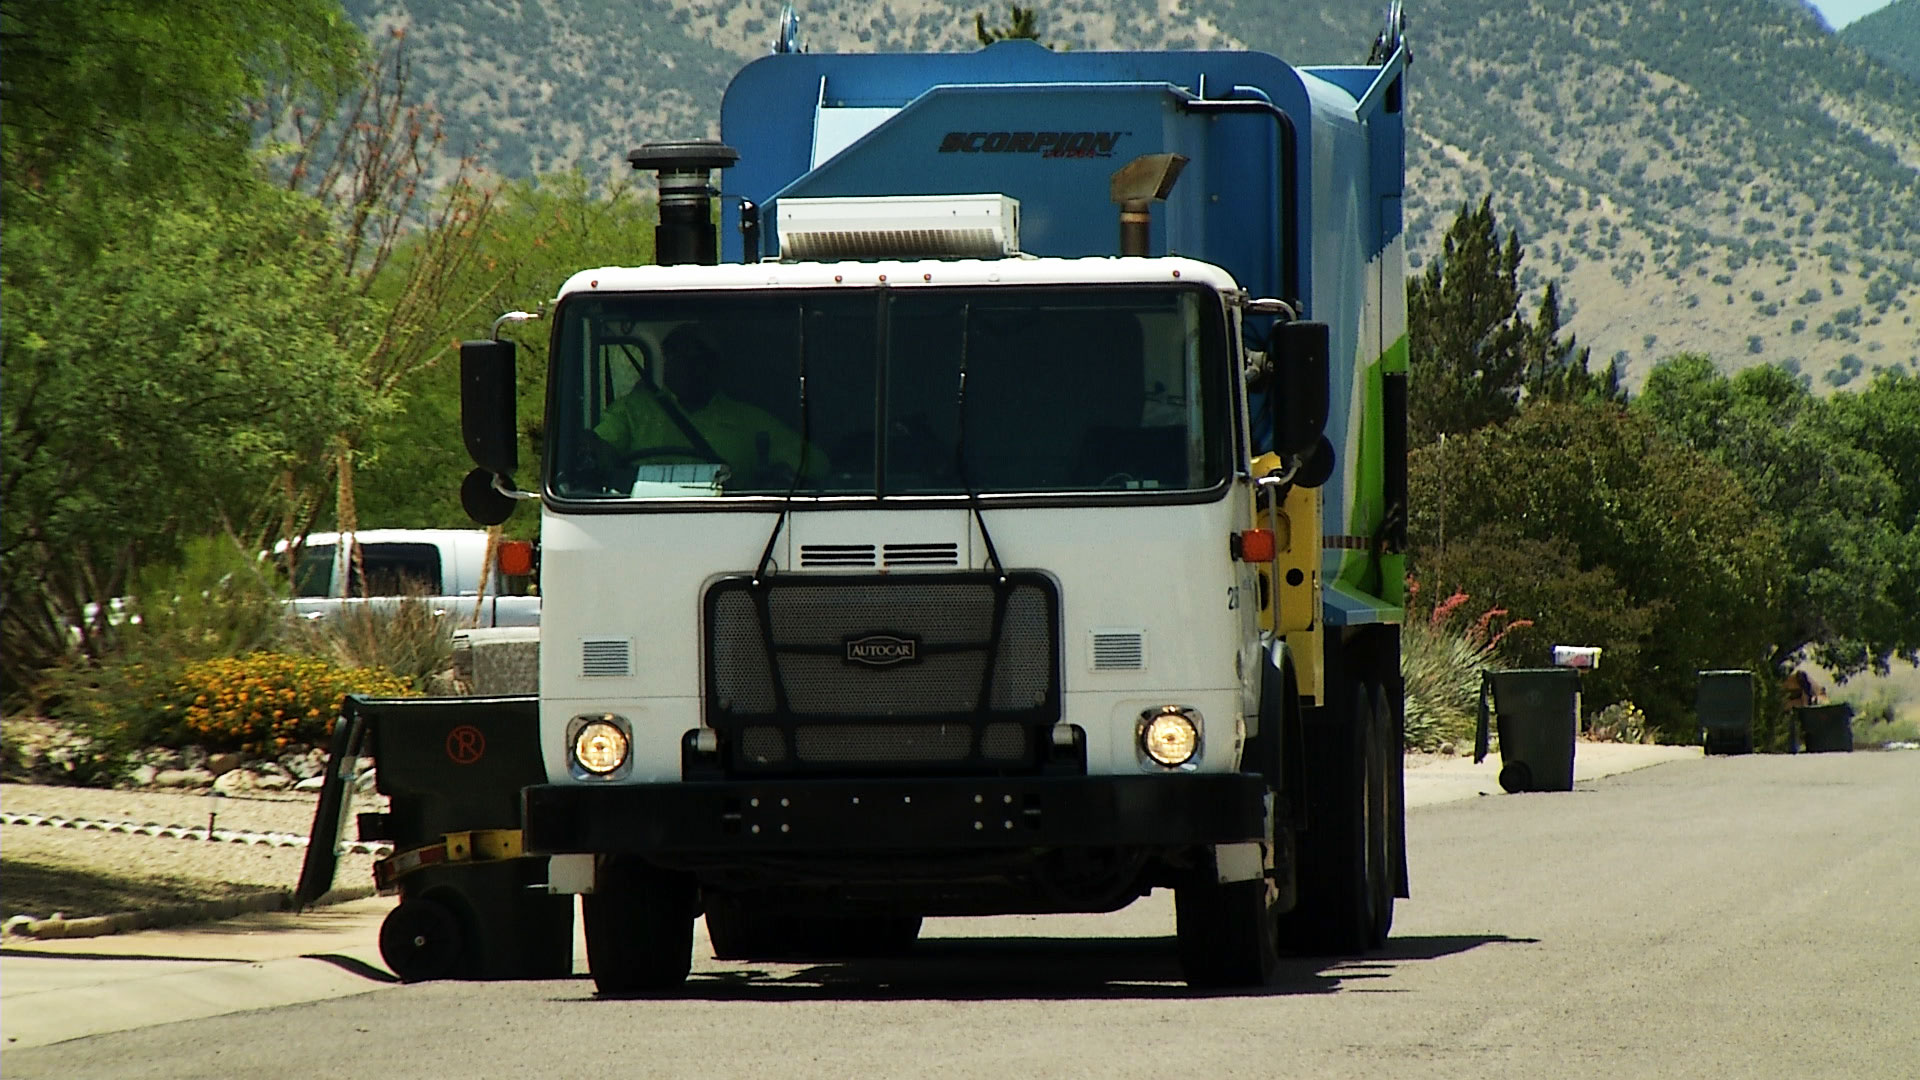 A garbage truck picks up trash bins from the curb in Sierra Vista on June 4, 2019.